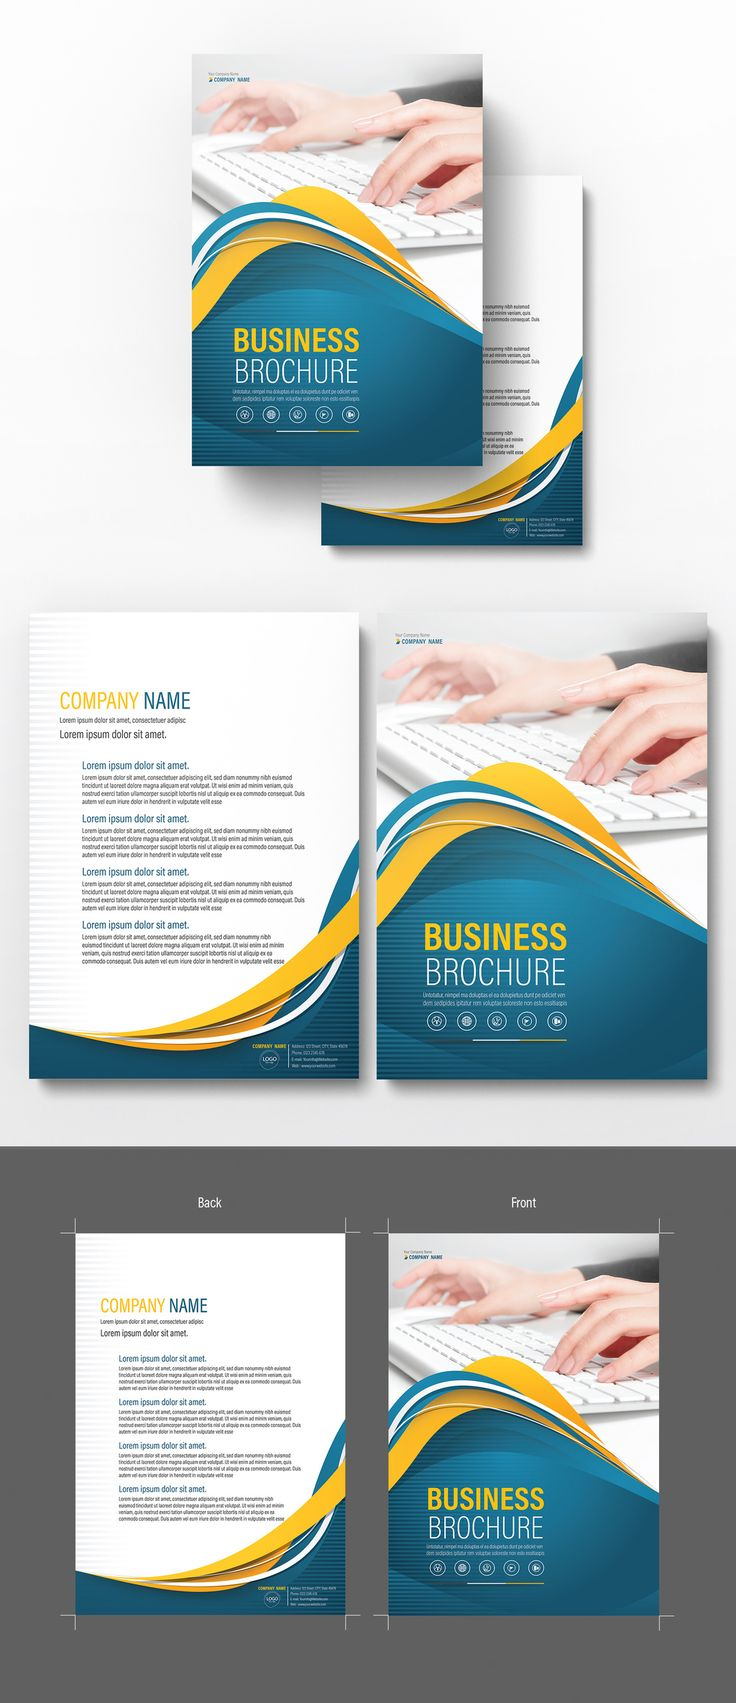 Brochure Cover Layout with Blue and Yellow Accents 5 - image | Adobe Stock  #Brochure #Business #Proposal #Booklet #Flyer #Template #Design #Layout #Cover #Book #Booklet #A4 #Annual #Report| Brochure template | Brochure design template | Flyers | Template | Brochures | Flyer Background | Background design | Business Proposal | Proposal Design | Booklet | Professional | Professional - Proposal - Brochure - Template